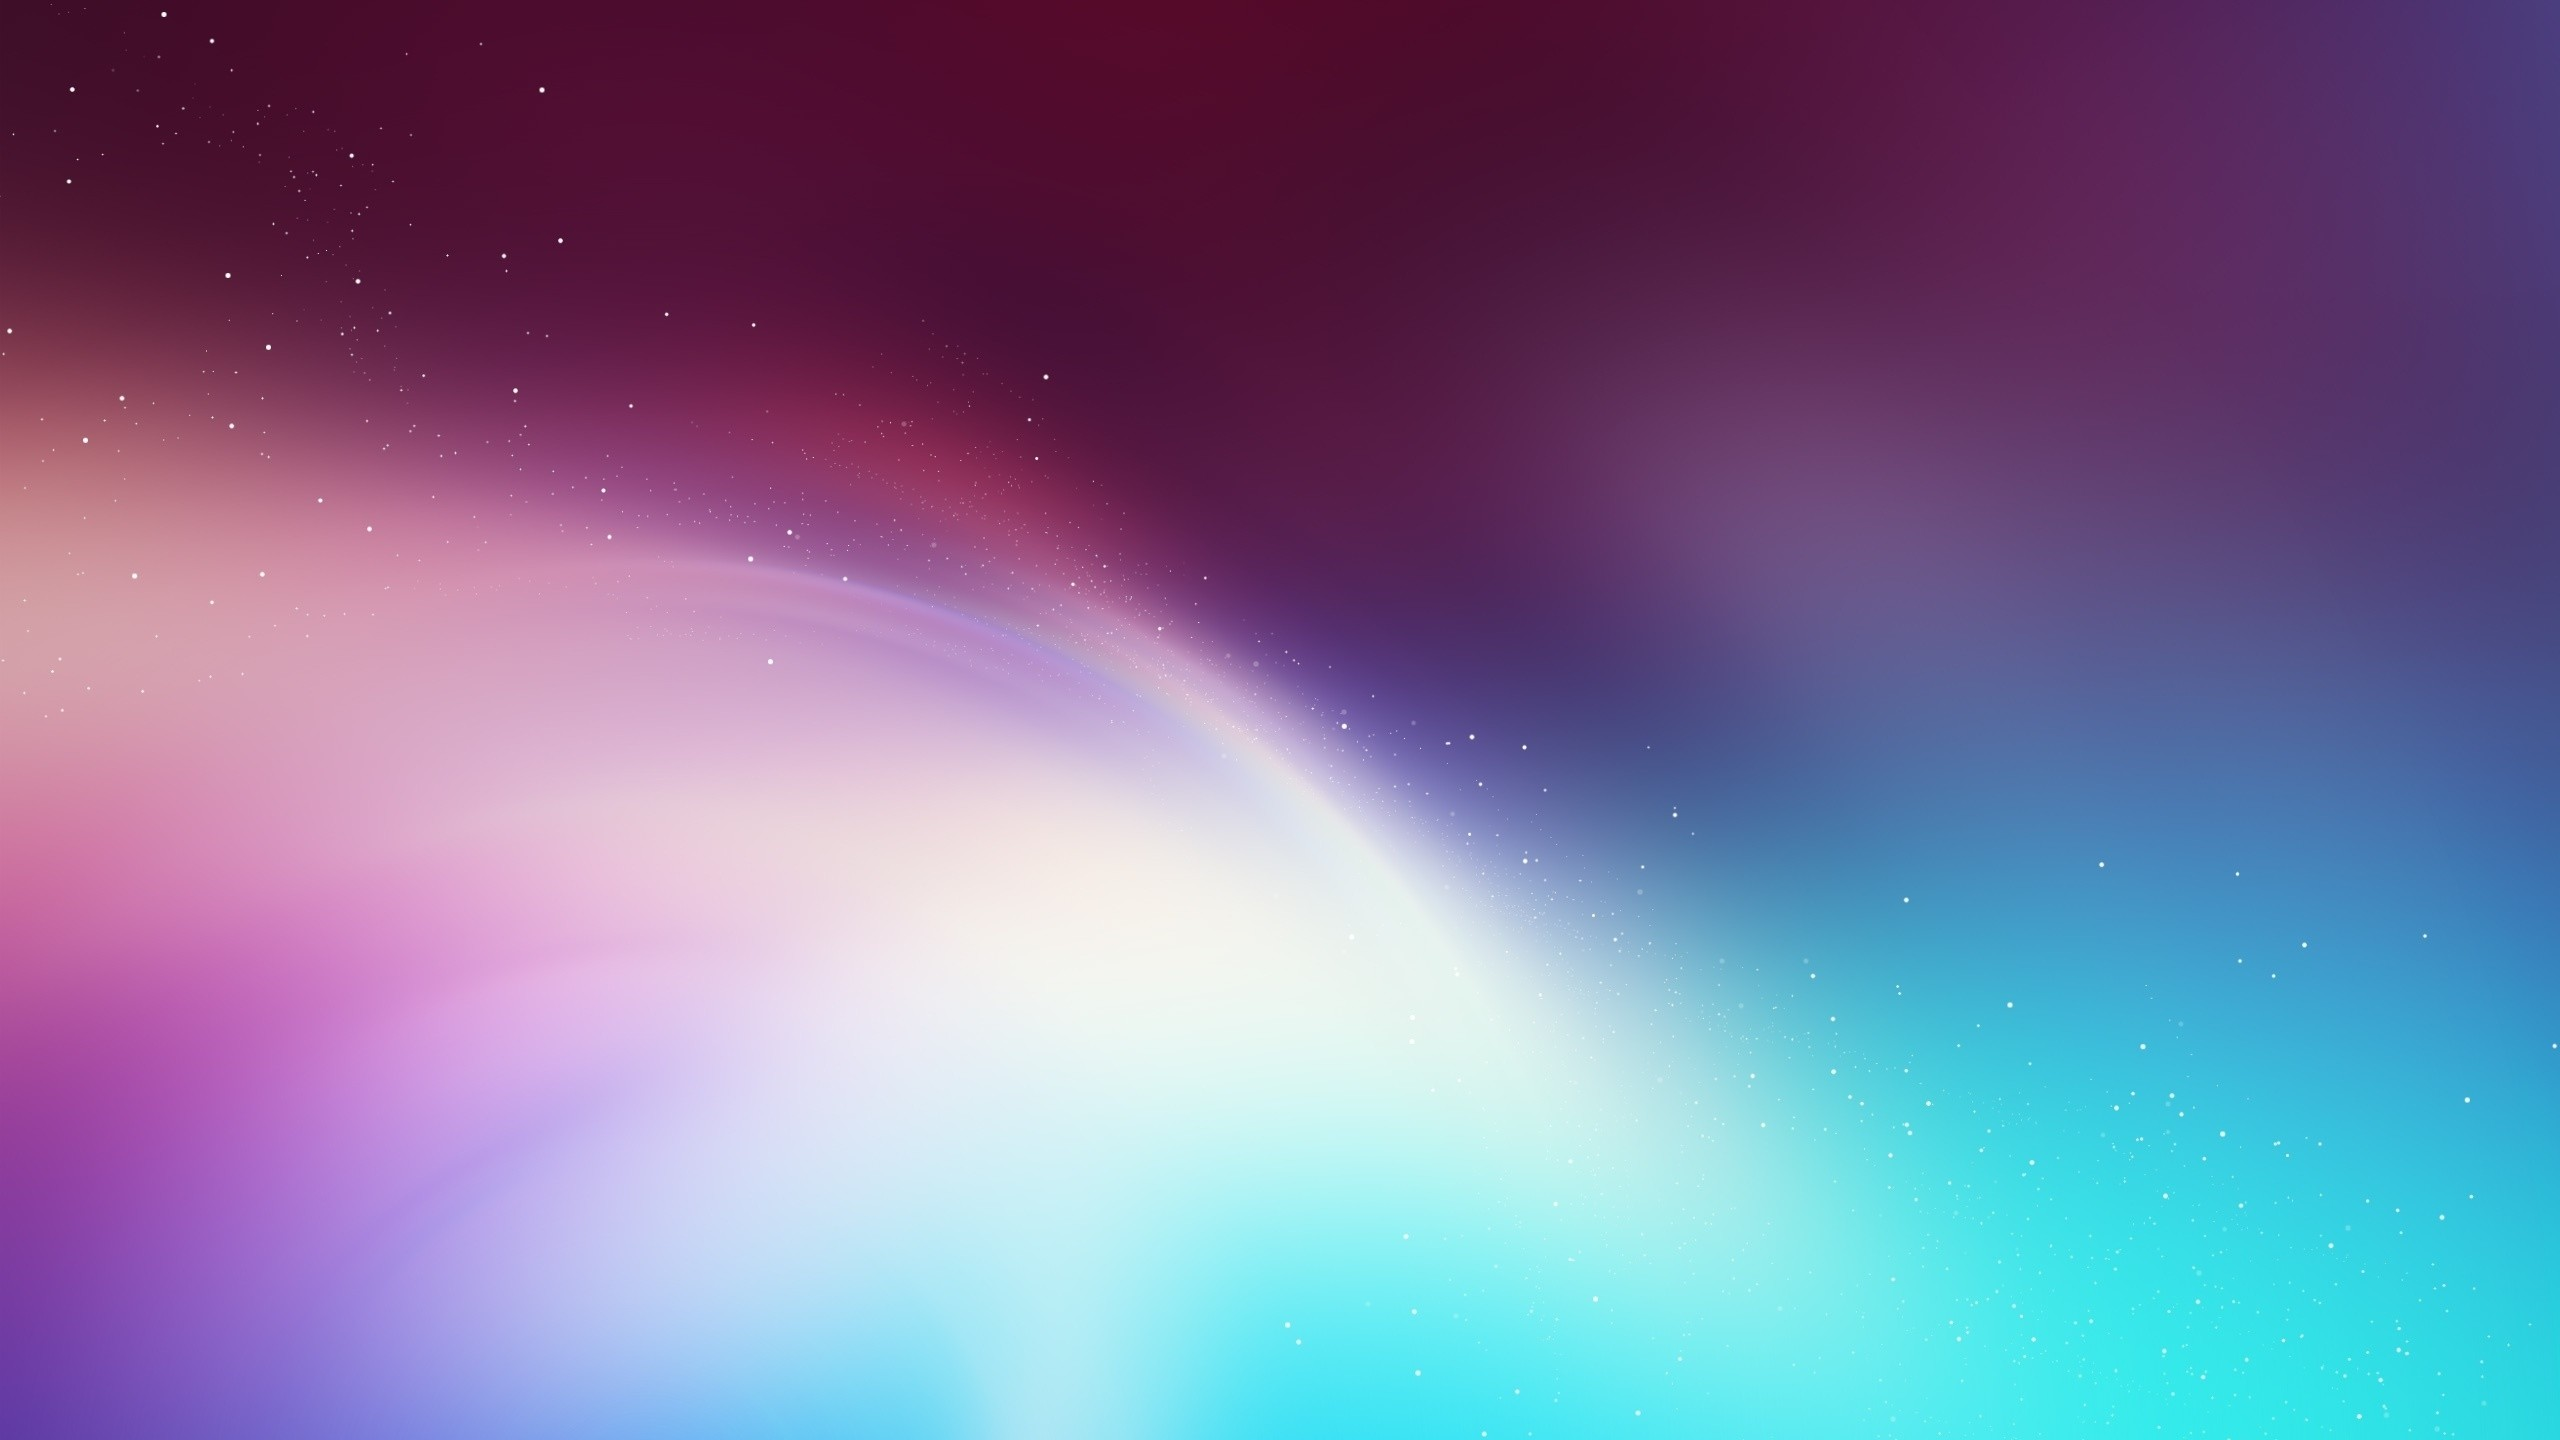 2560x1440 Wallpaper For Youtube 83 Images